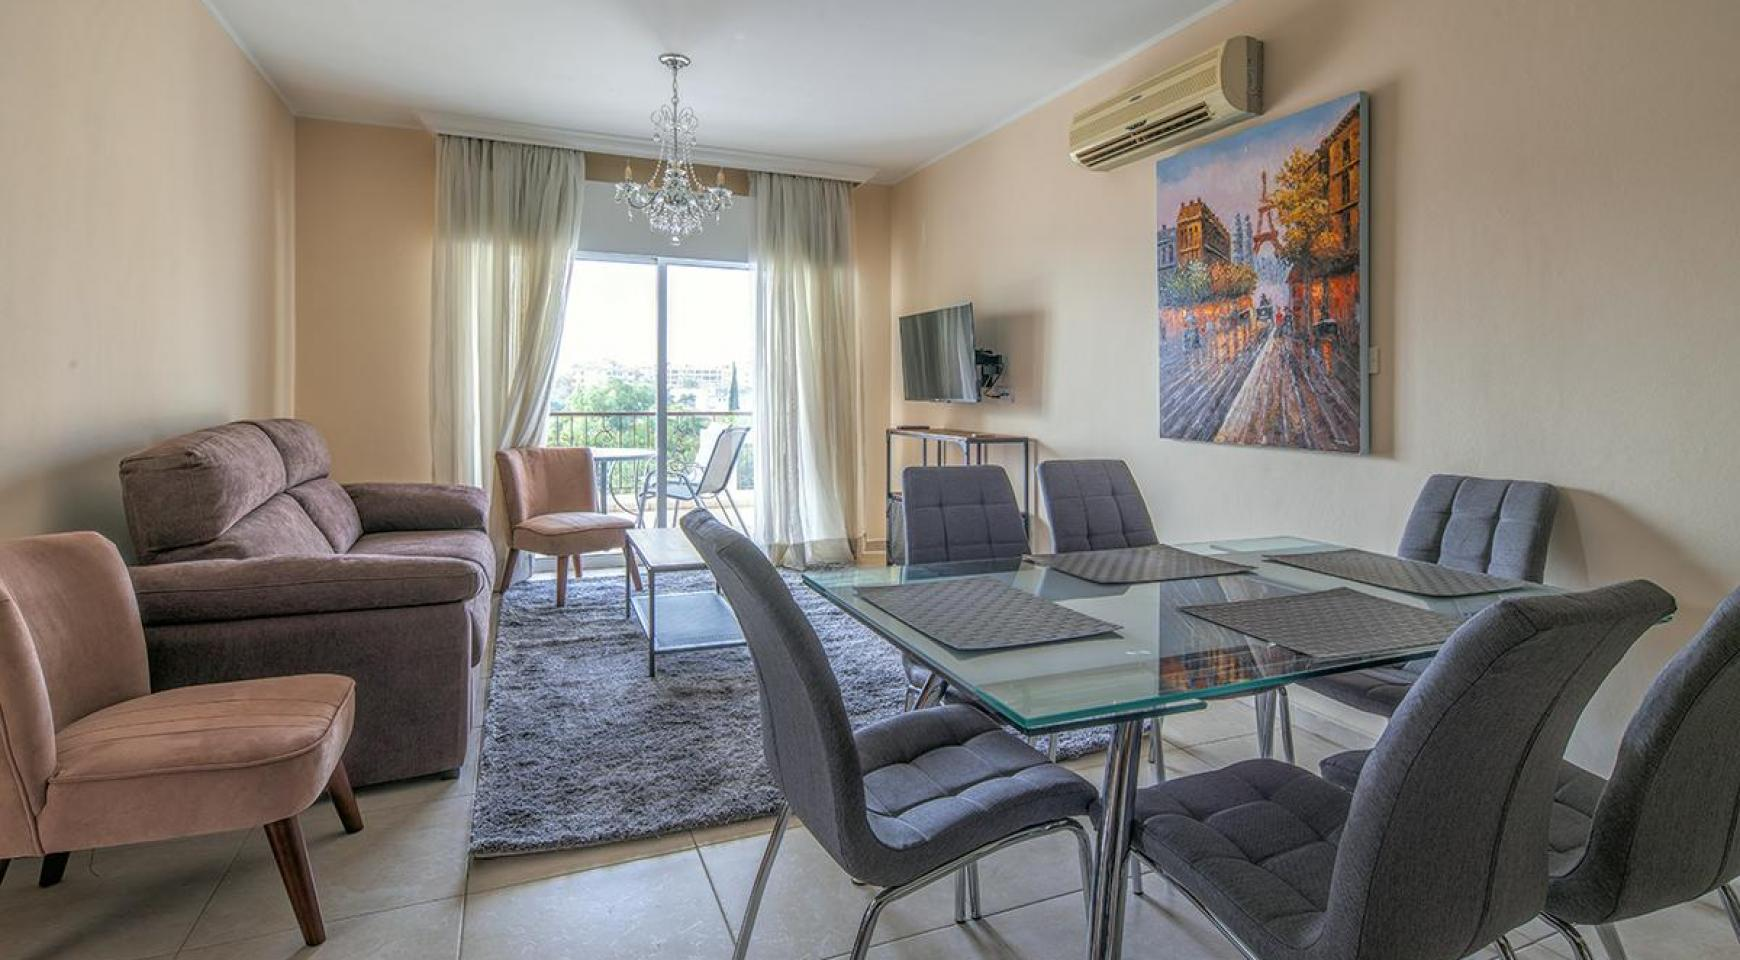 Luxury 2 Bedroom Apartment Mesogios Iris 301 in the Tourist area near the Beach - 3